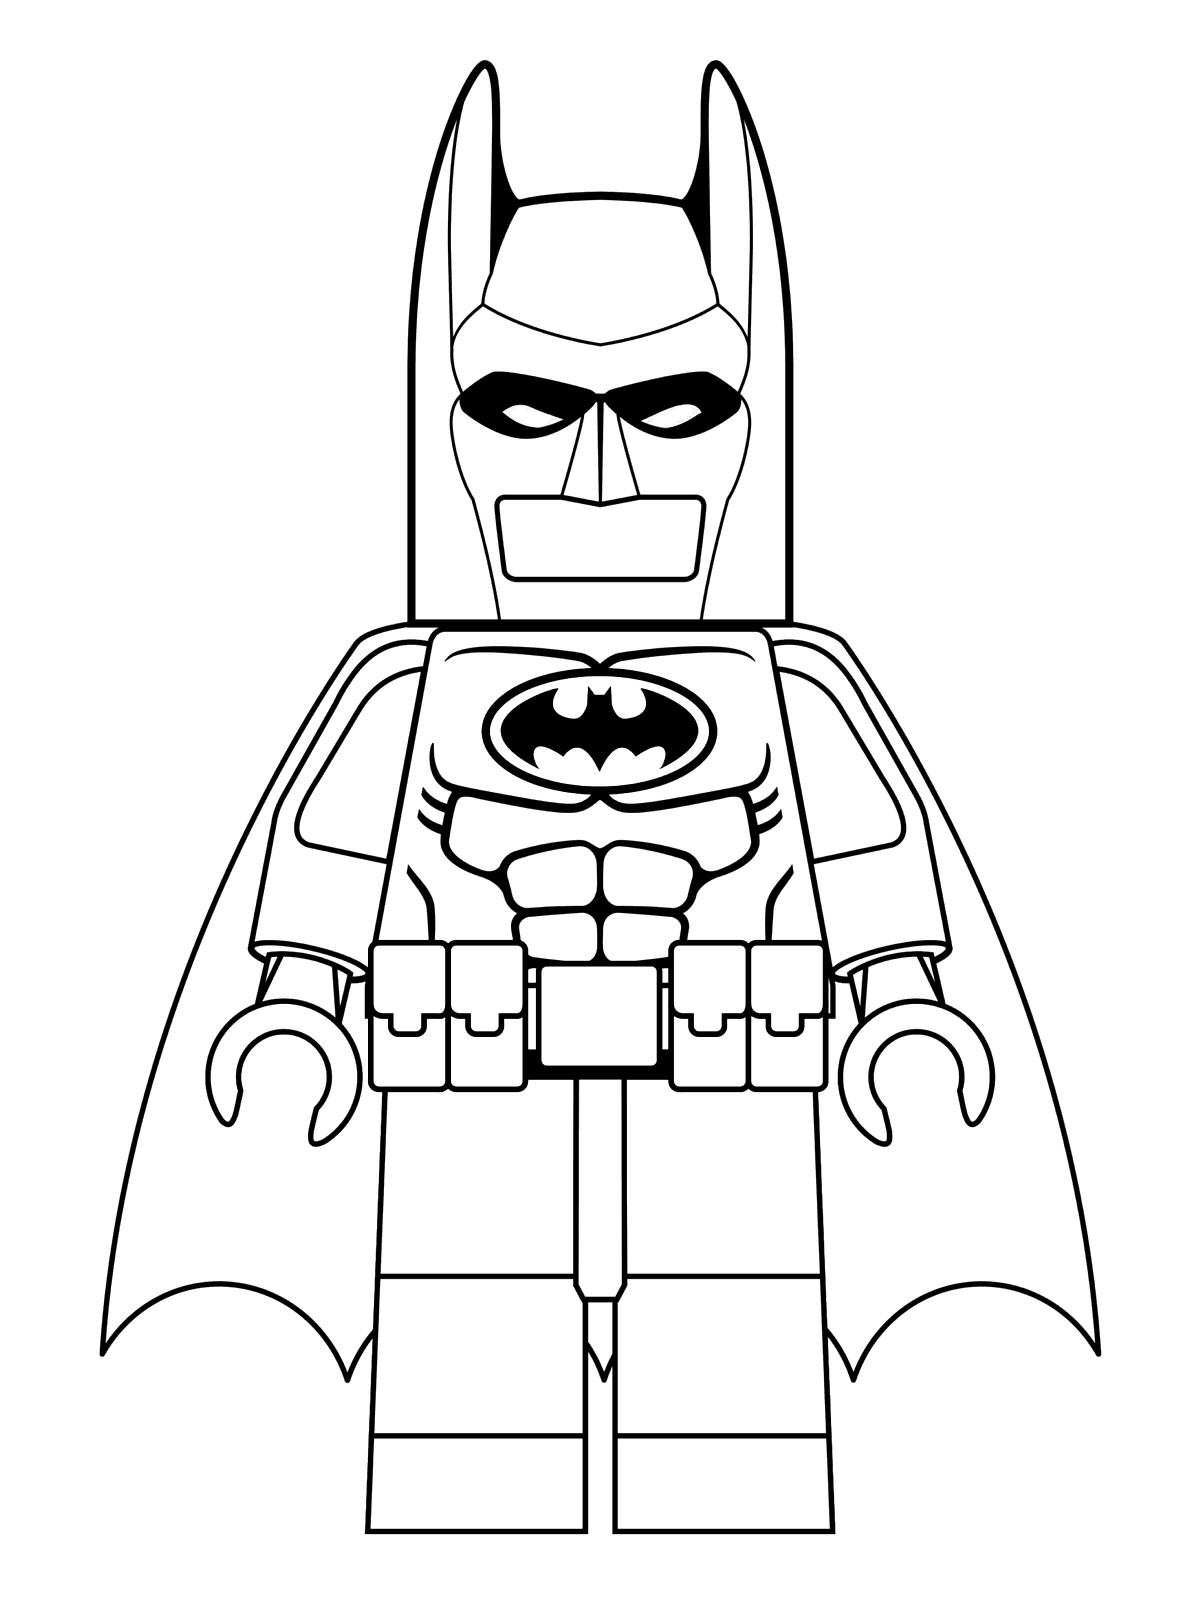 Kids n funcom 16 coloring pages of Lego Batman Movie